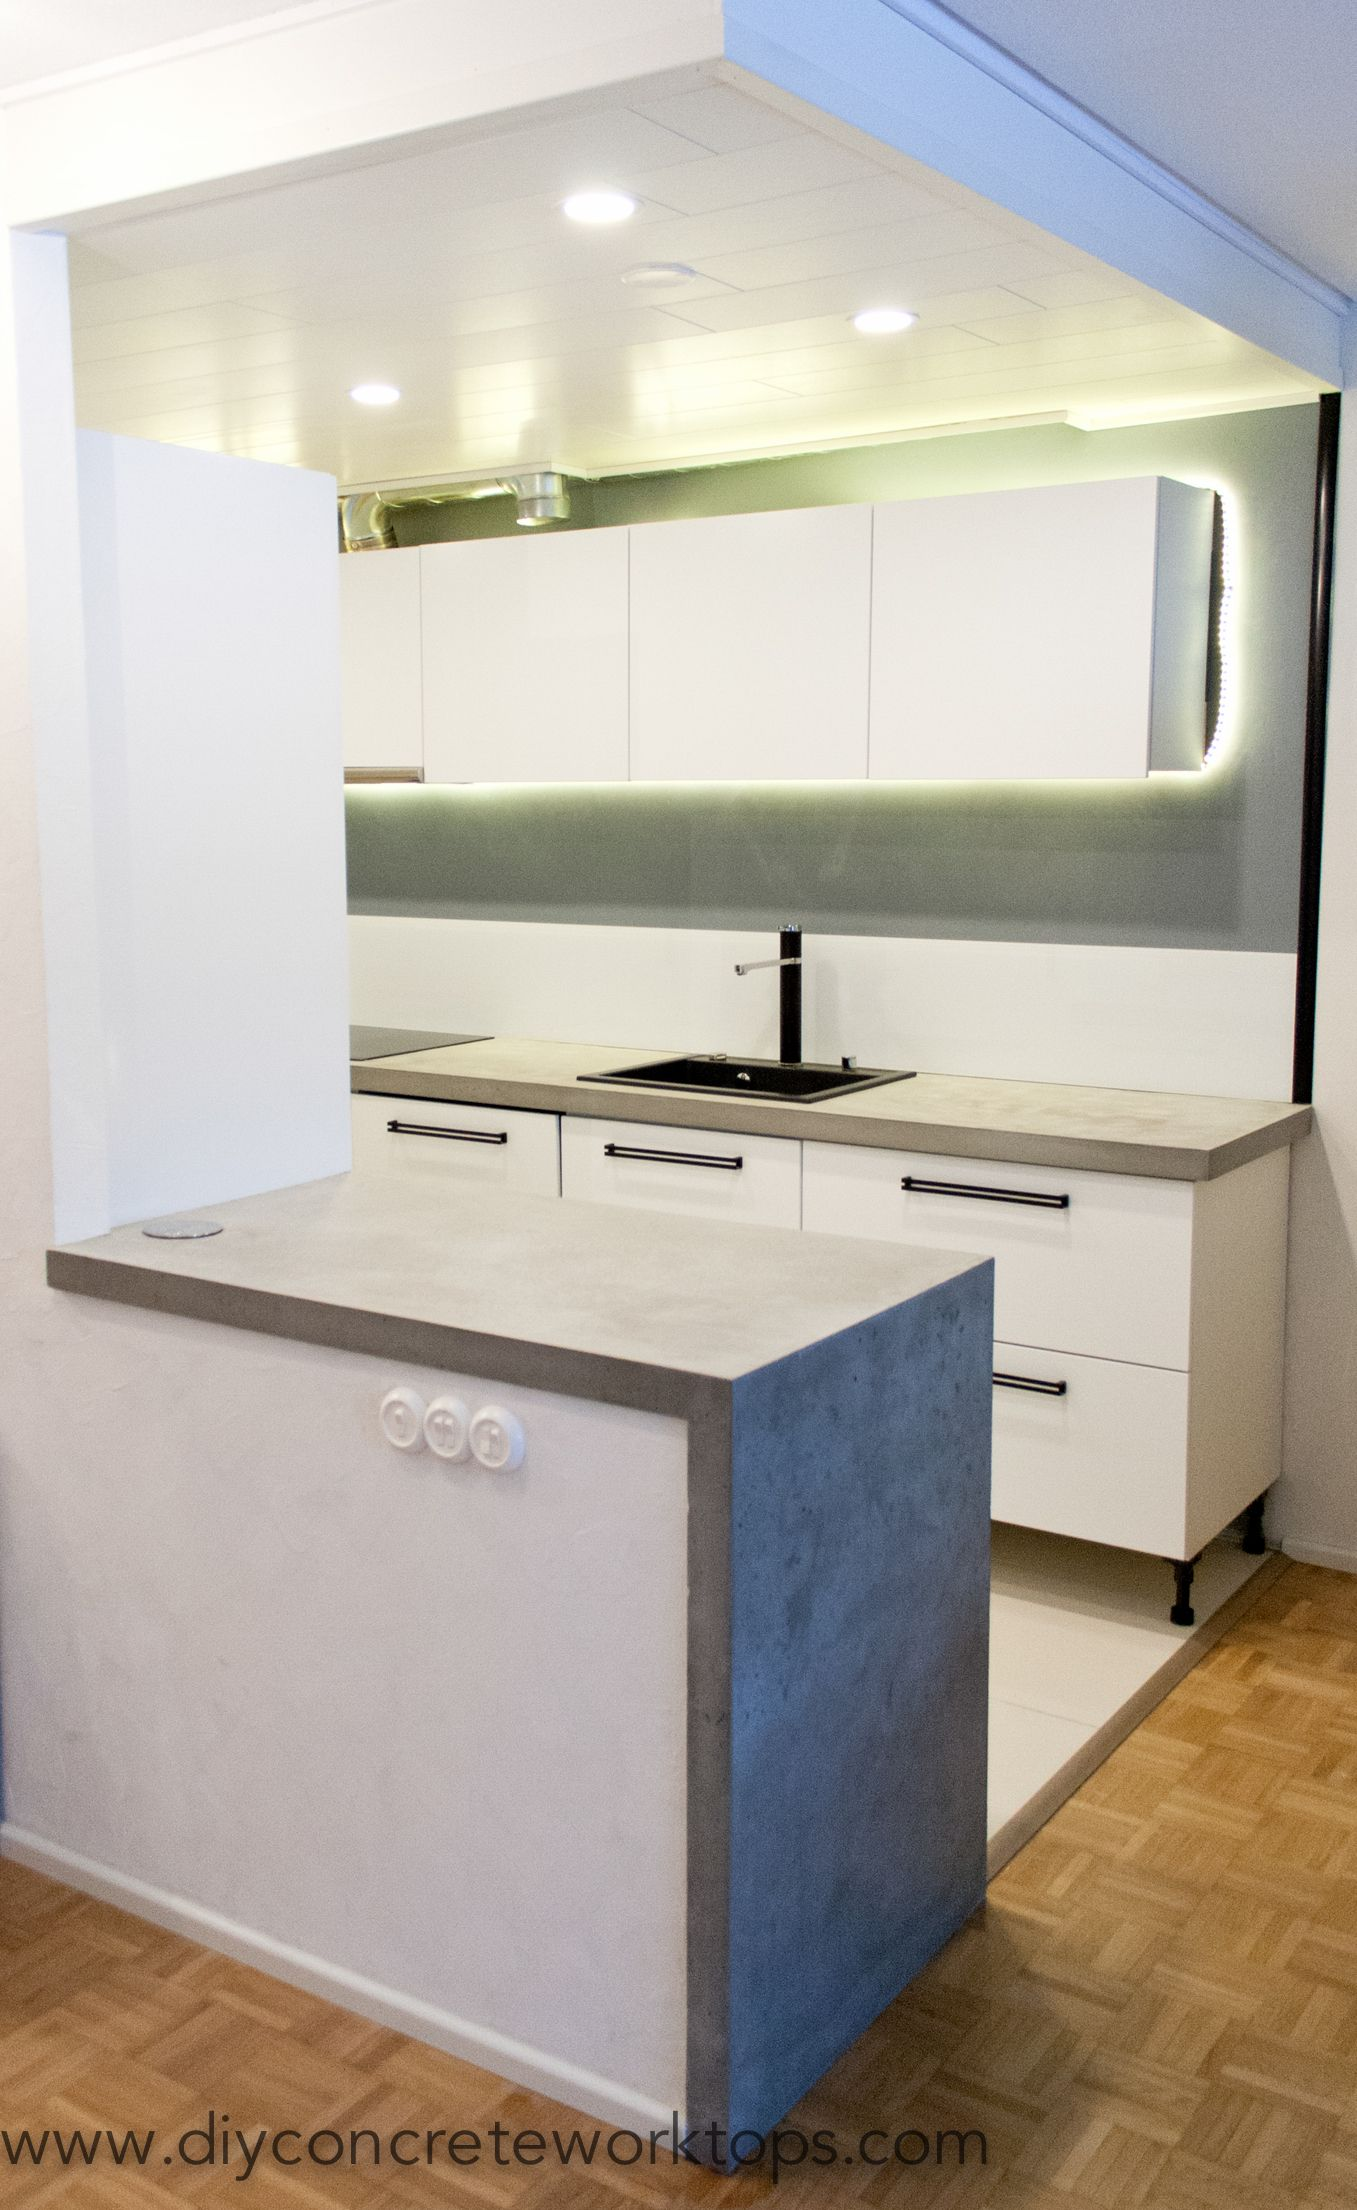 Concrete Countertop Made With Diy Z Counterform Concerte